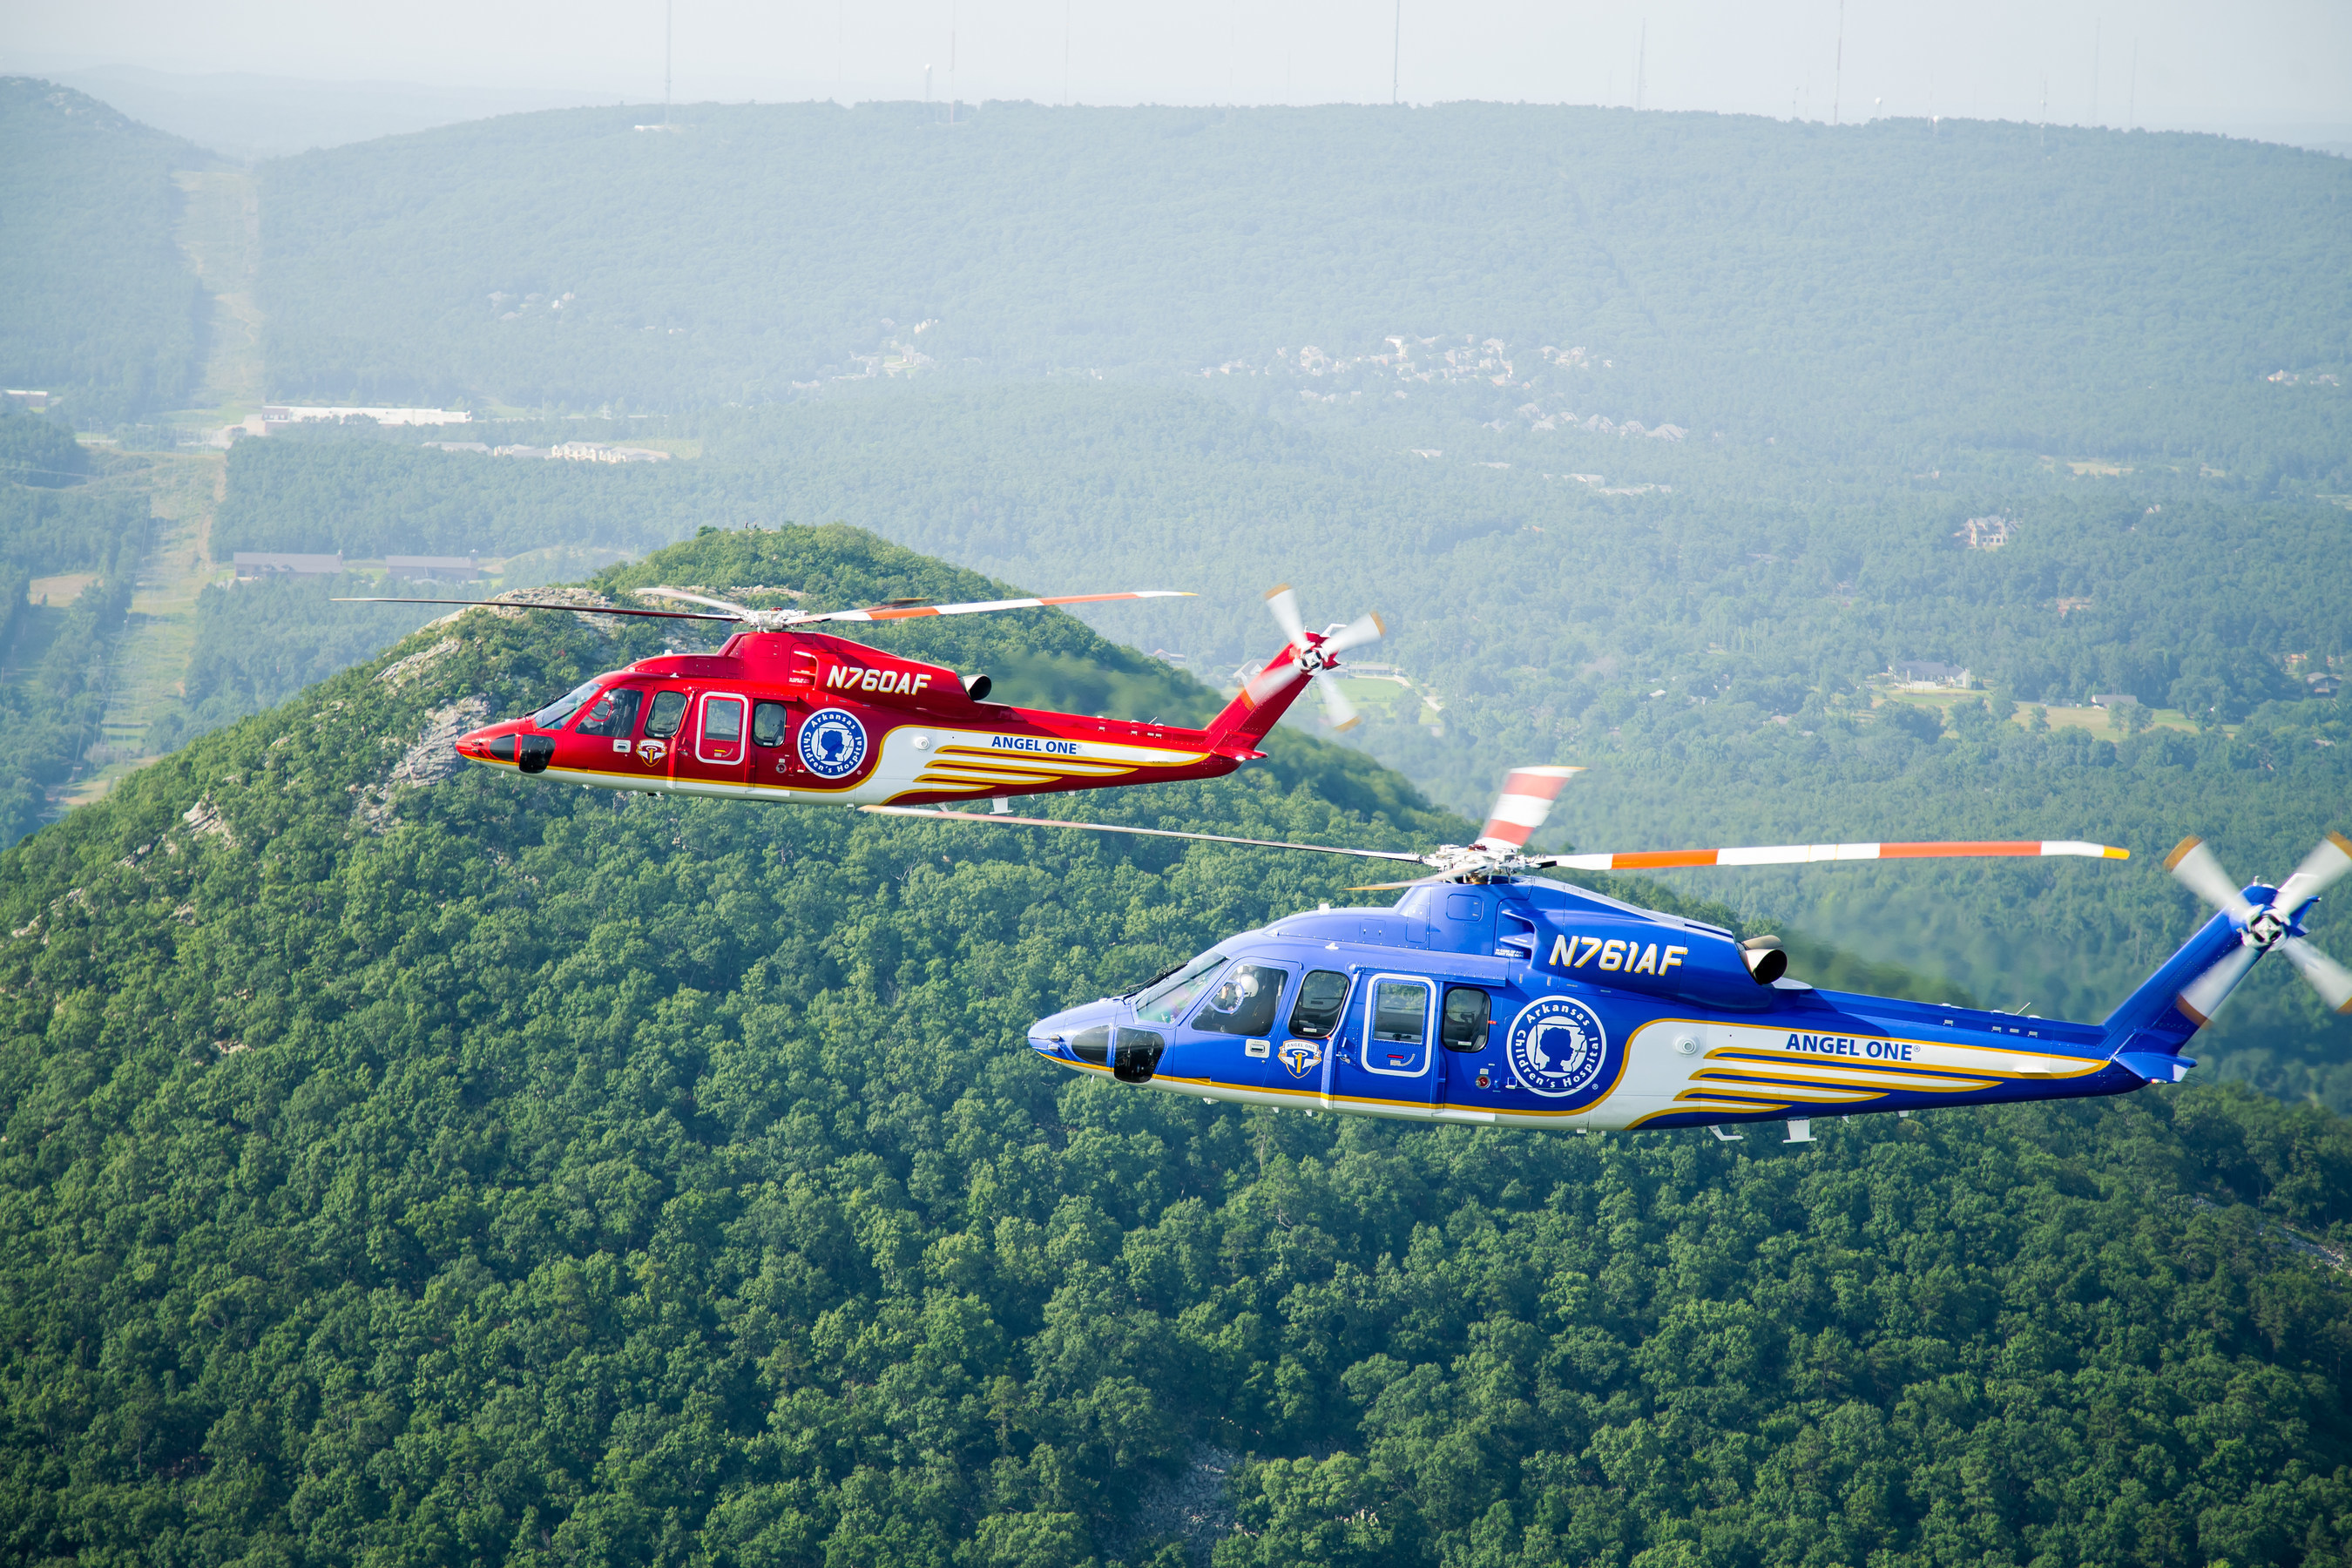 After Years Of Vip Service This S 76b And Sikorsky